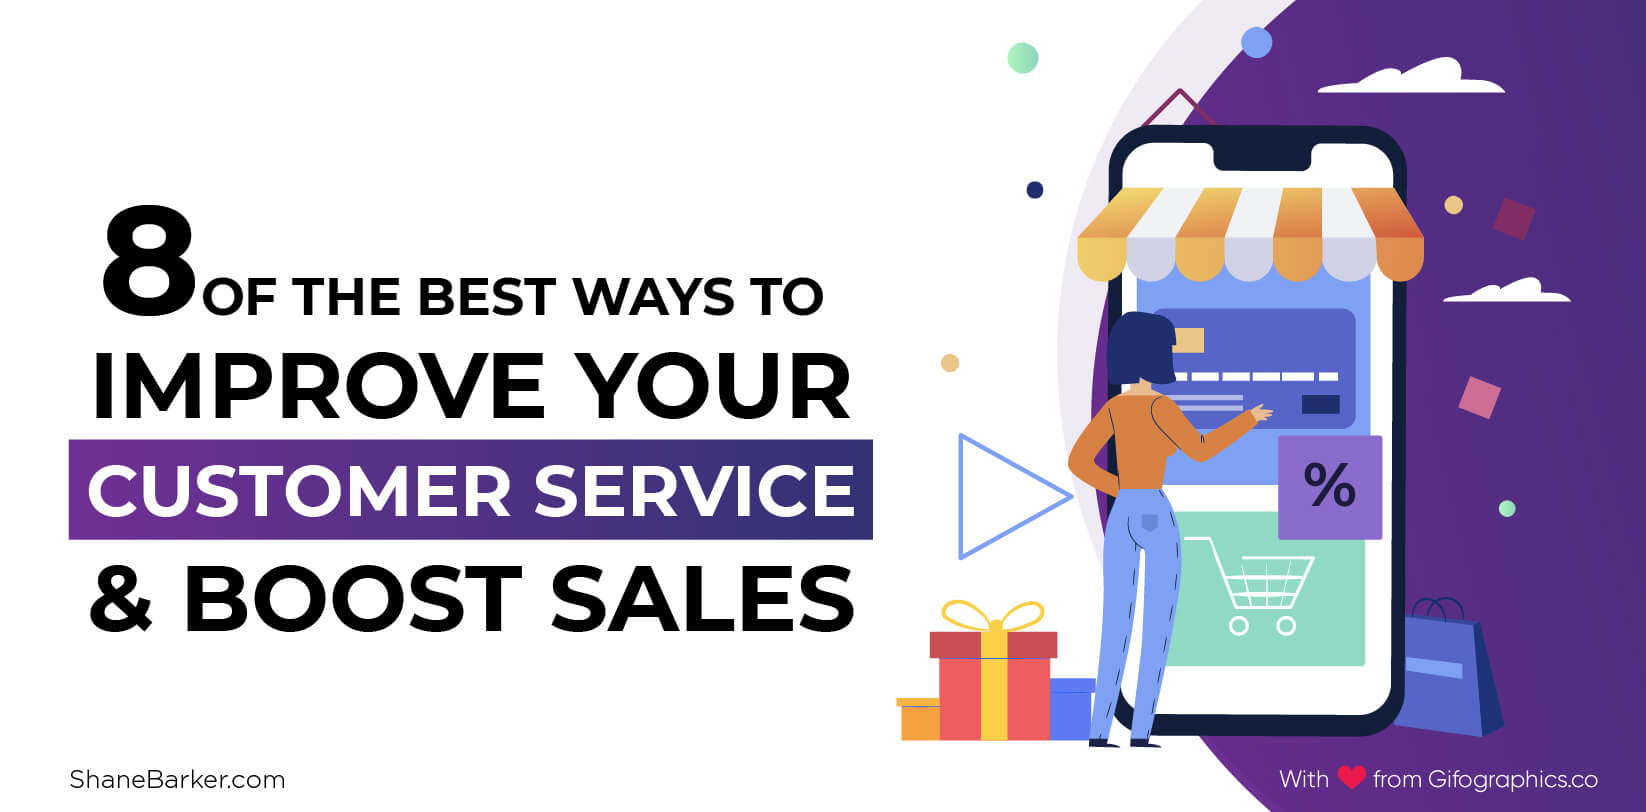 8 of the Best Ways to Improve Your Customer Service and Boost Sales